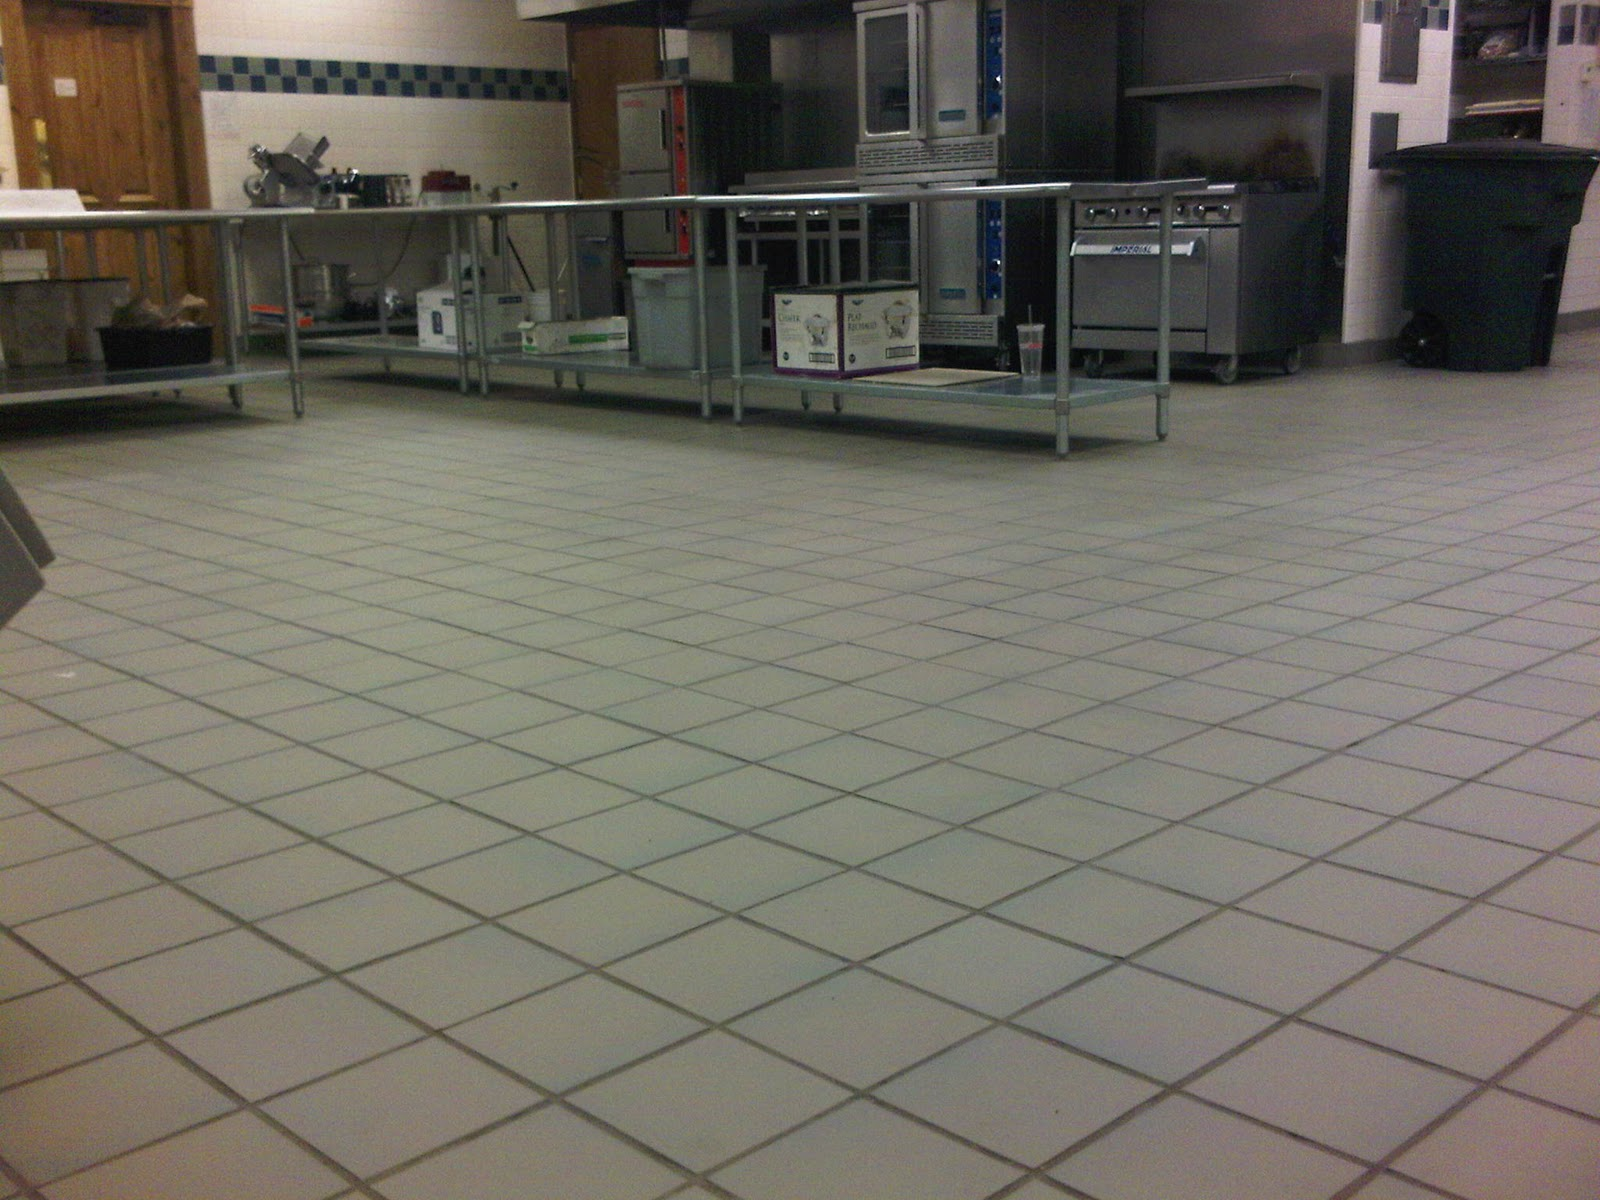 Integrity installations a division of front range backsplash commercial kitchen Commercial floor tile